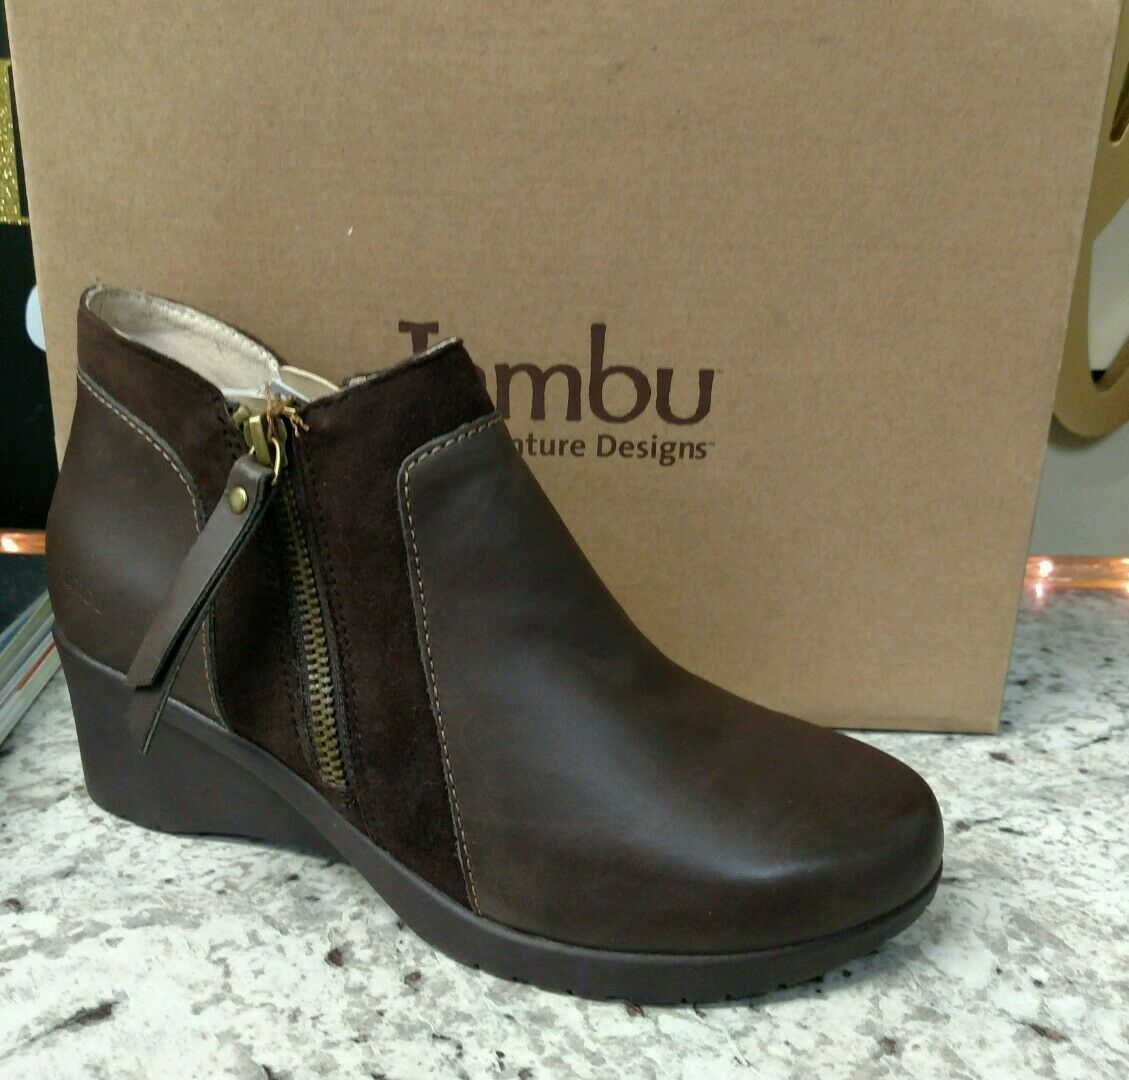 JAMBU  CUBE ANKLE BOOTS ZIPPER BOTH SIDES  REG.  160 VERY NICE    LEATHER